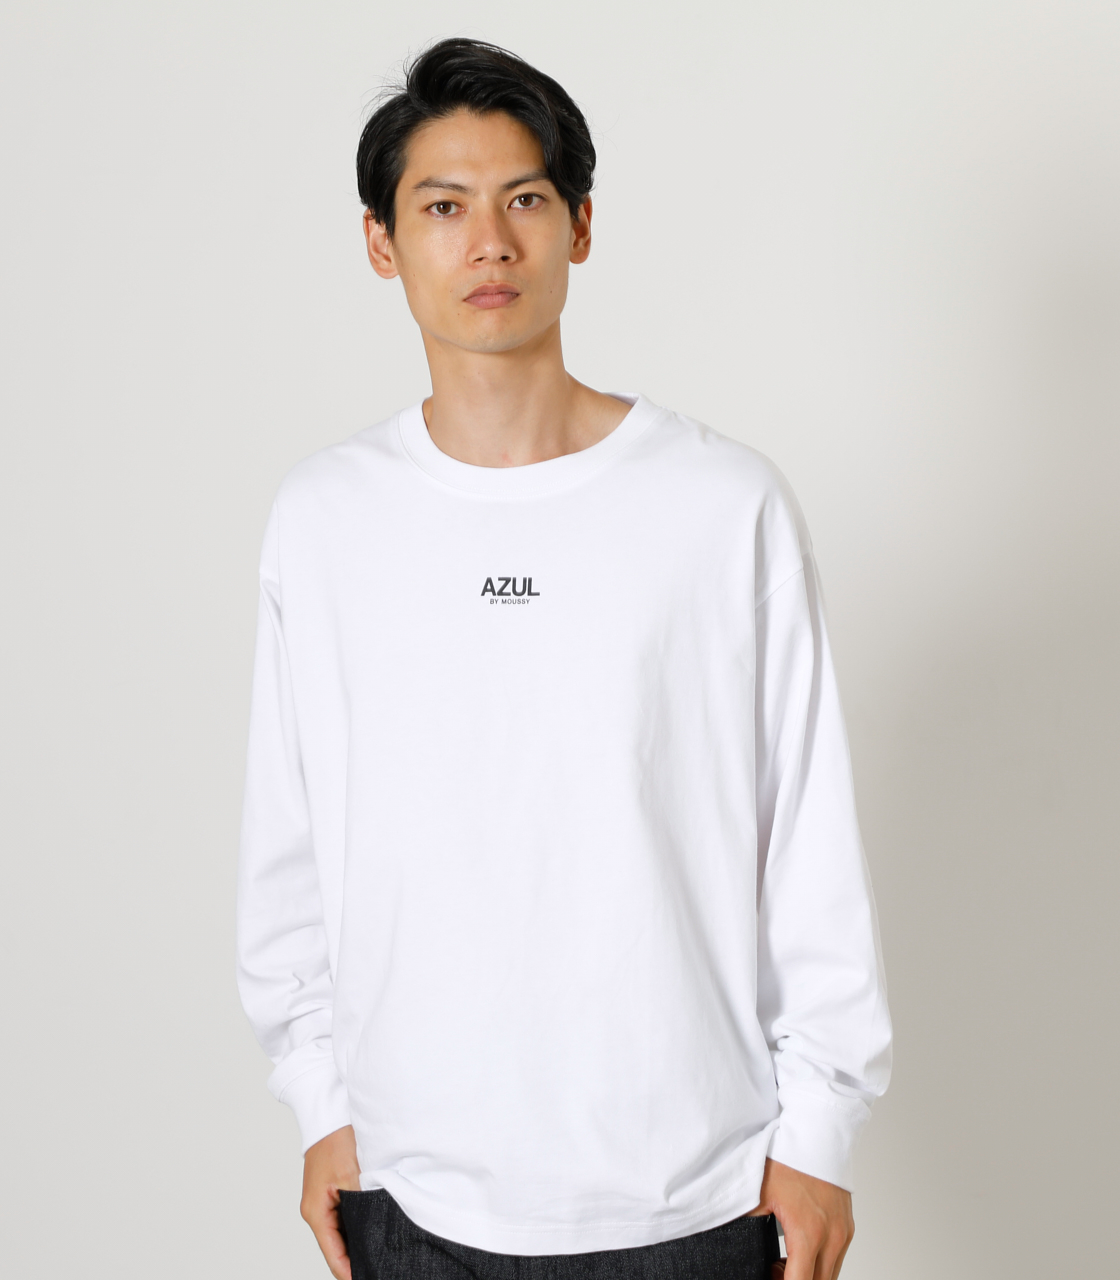 ONS SIMPLE LOGO TEE/ONSシンプルロゴTシャツ 詳細画像 WHT 11